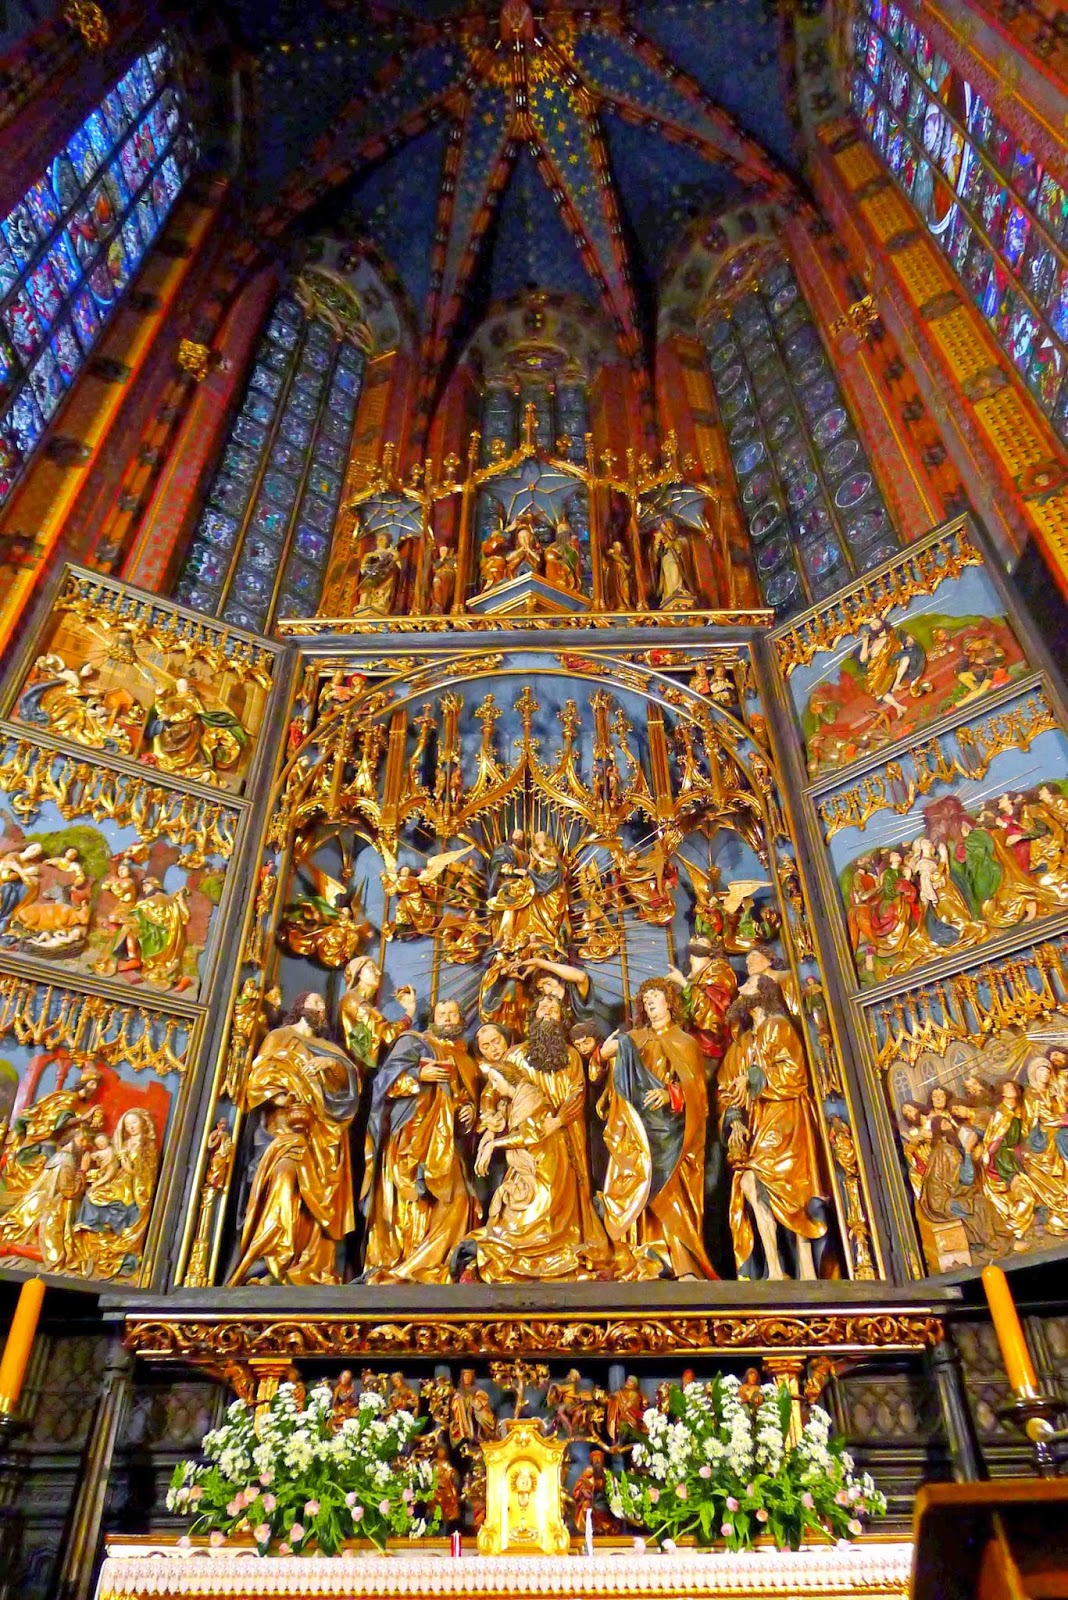 Gothic Altarpiece by Veit Stoss